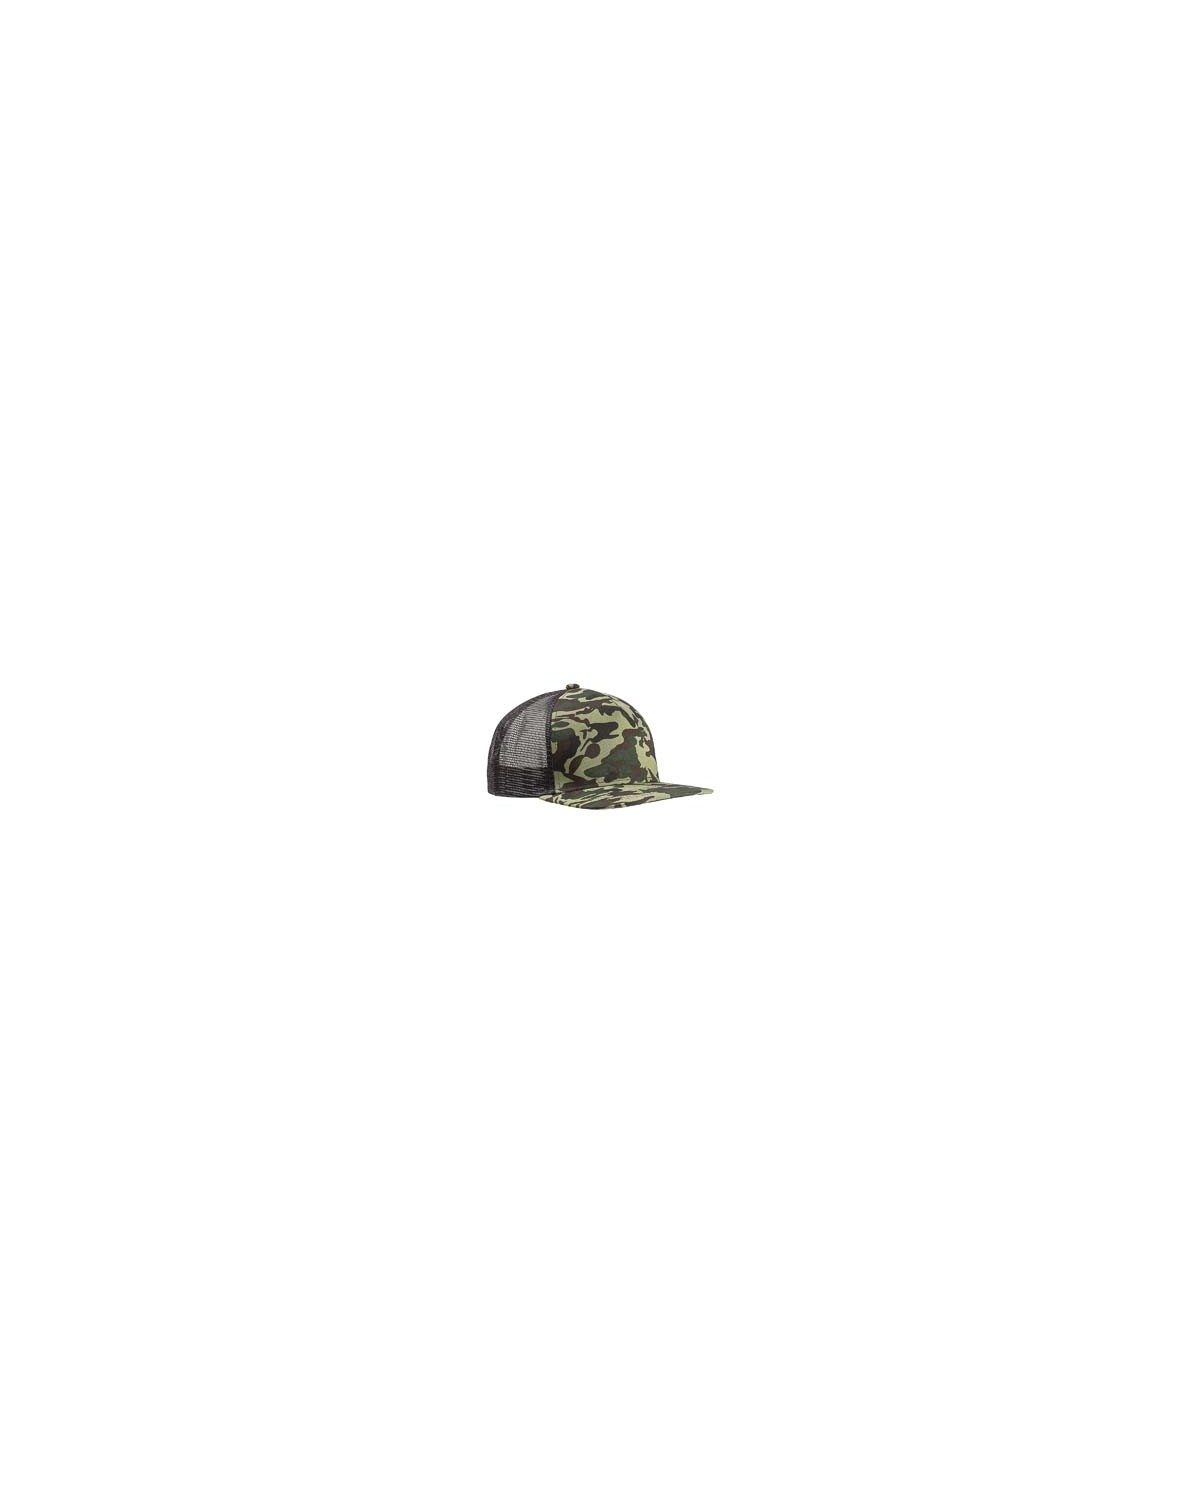 BX025 Big Accessories FOREST CAMO/BLK